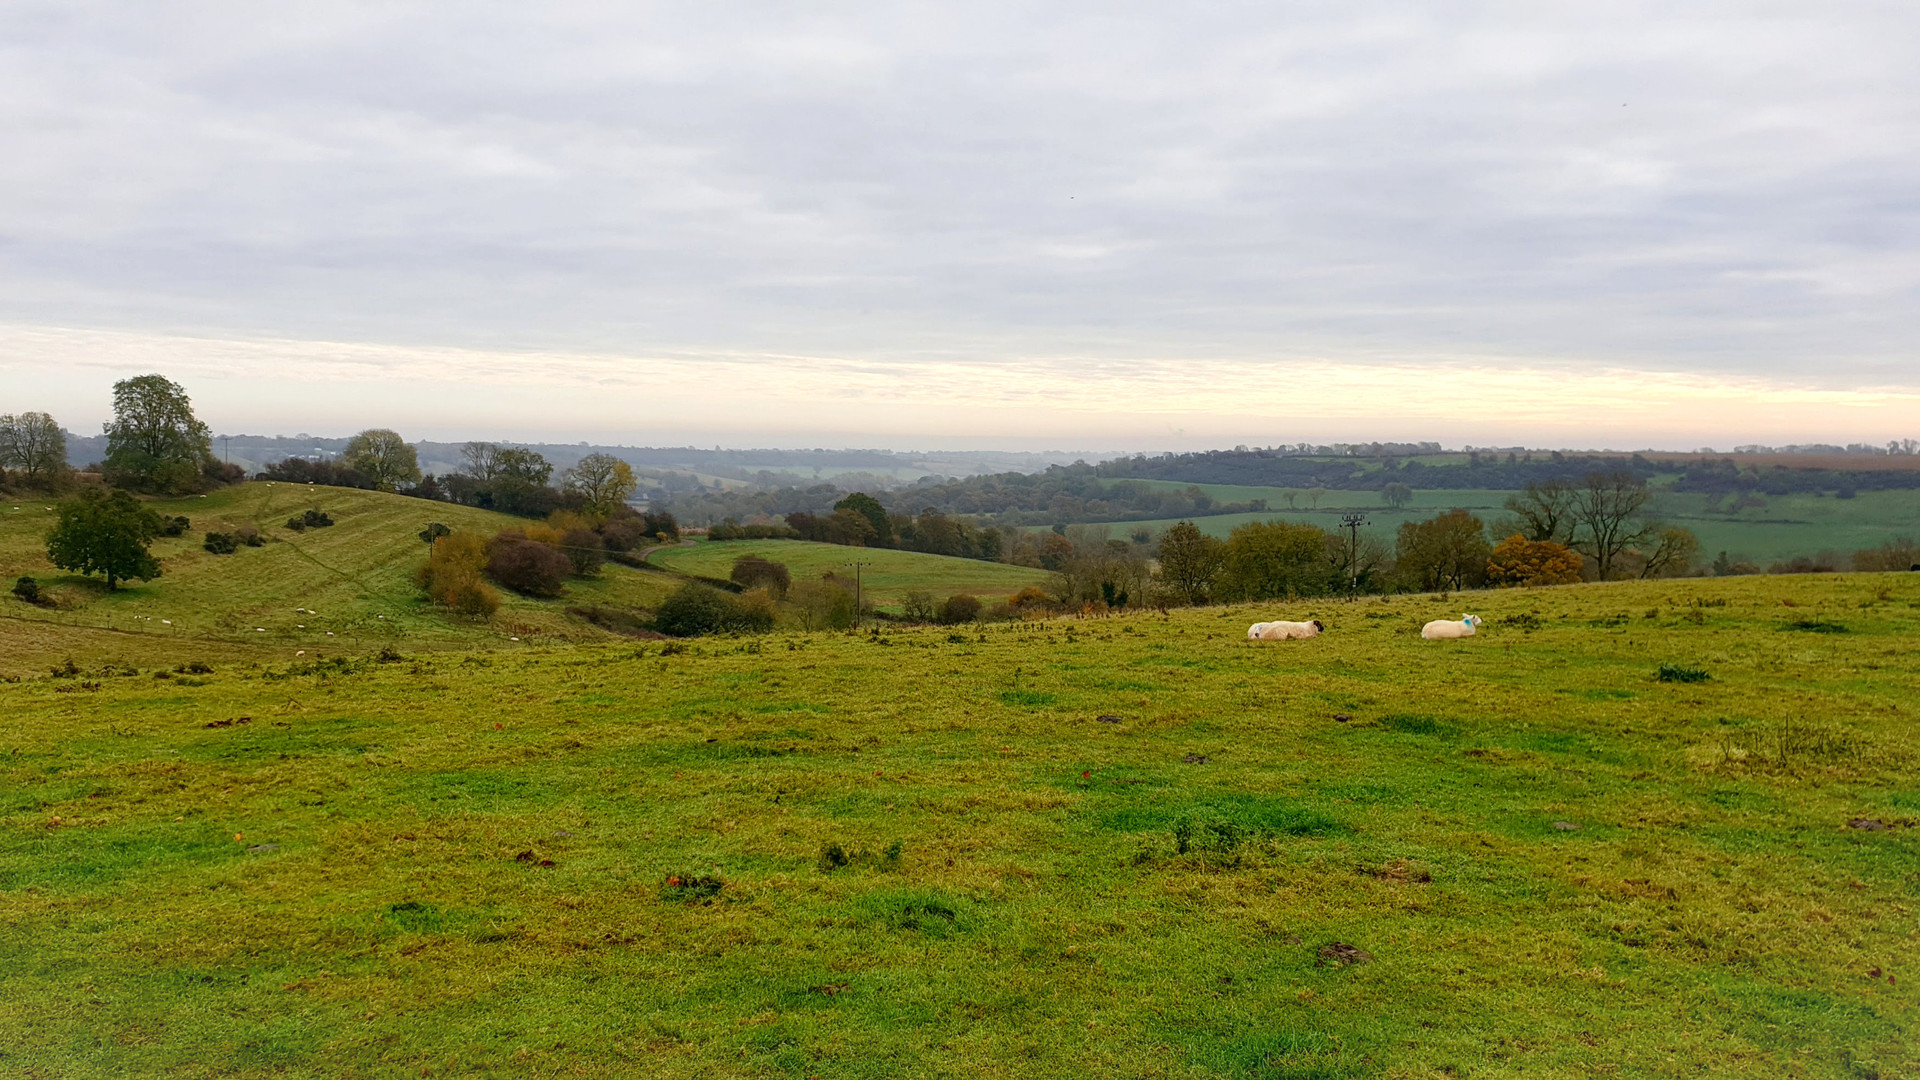 Guided tours in the Cotswolds